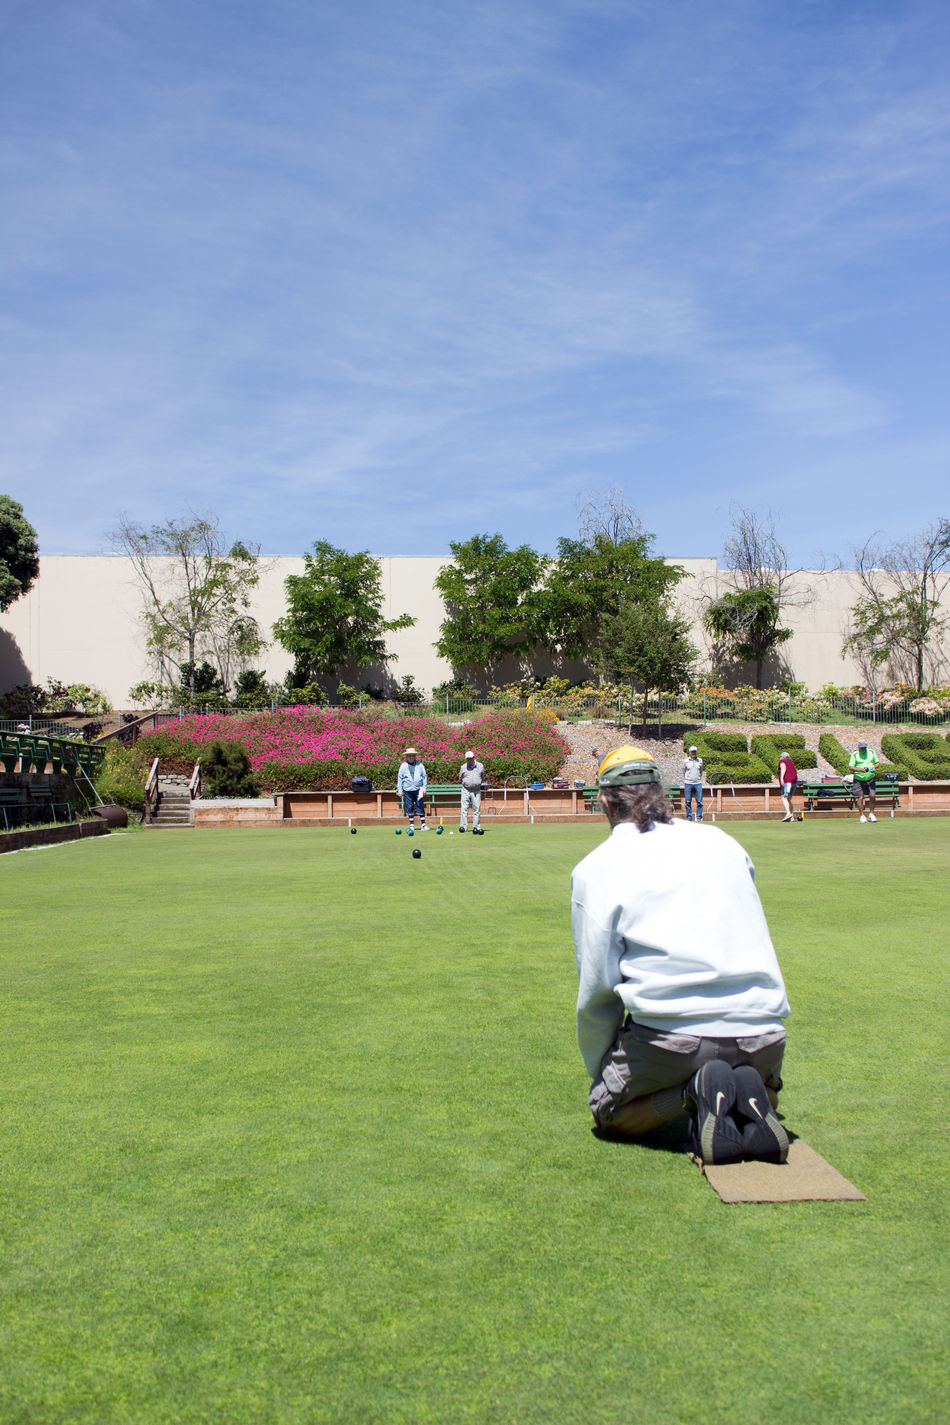 Bowling California Enjoyment Field Fun Golden Gate Park Grass Grassy Green Color Lawn Lawn Bowling Leisure Activity Lifestyles Outdoors People Relaxation San Francisco Sky Sport